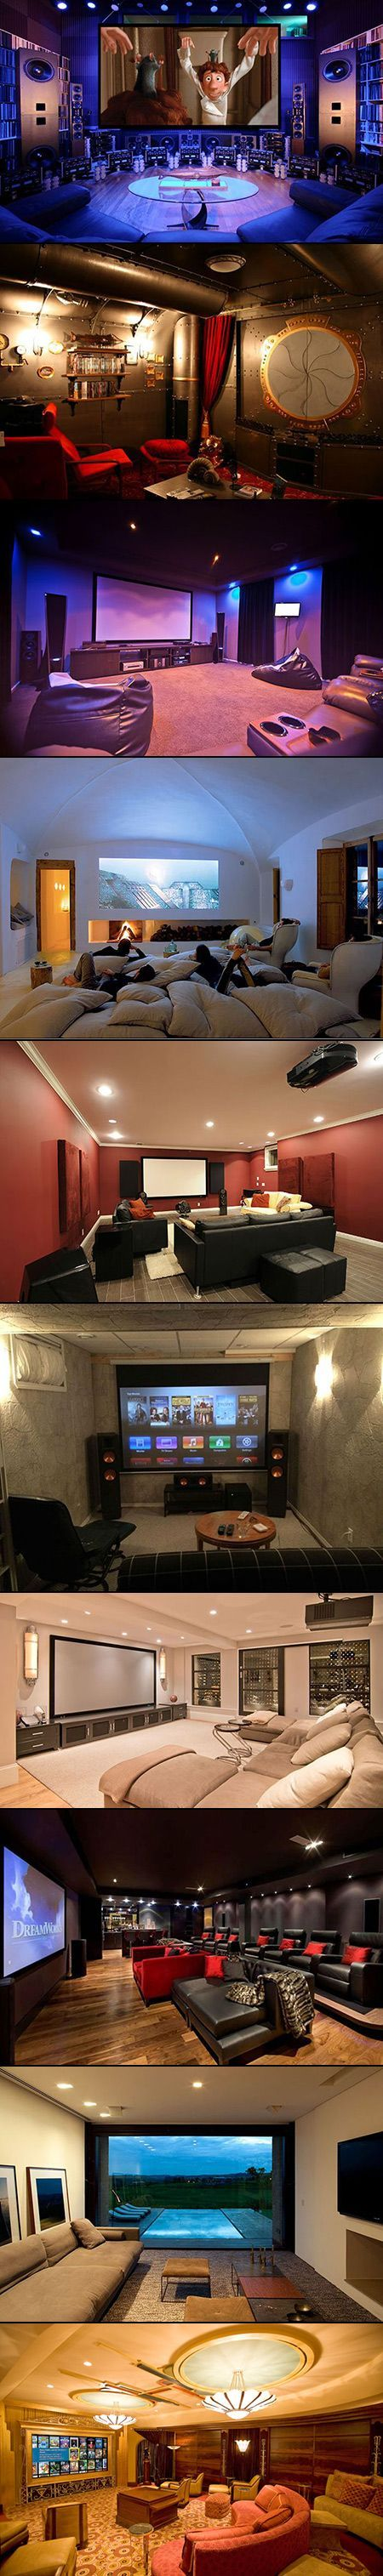 Latest Media And Feedback In Dwelling Theater – Trendy Furnishings, Dwelling Designs & Ornament Concepts